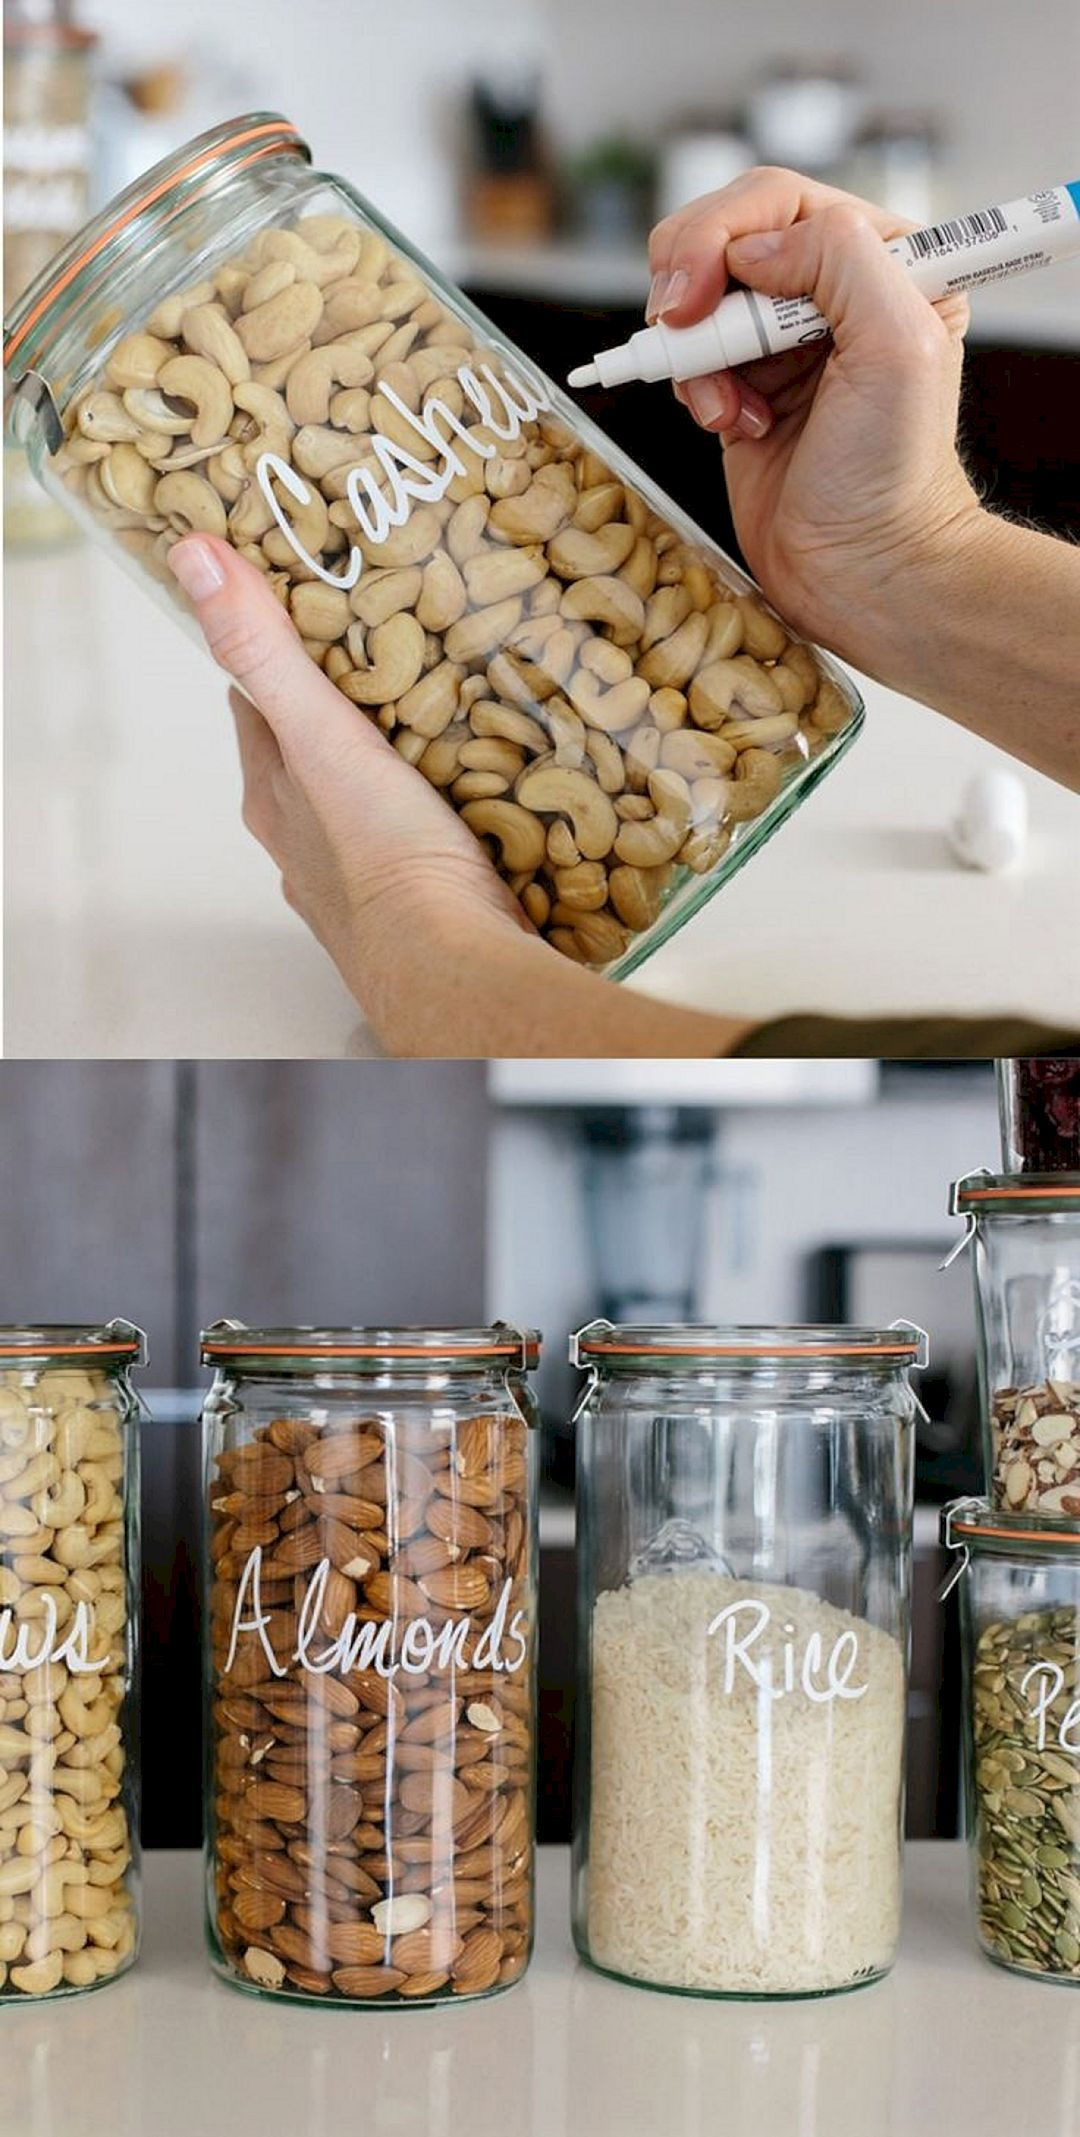 15 Stunning DIY Kitchen Storage Solutions for Small Space and Space Saving Ideas / FresHOUZ.com #kitchen